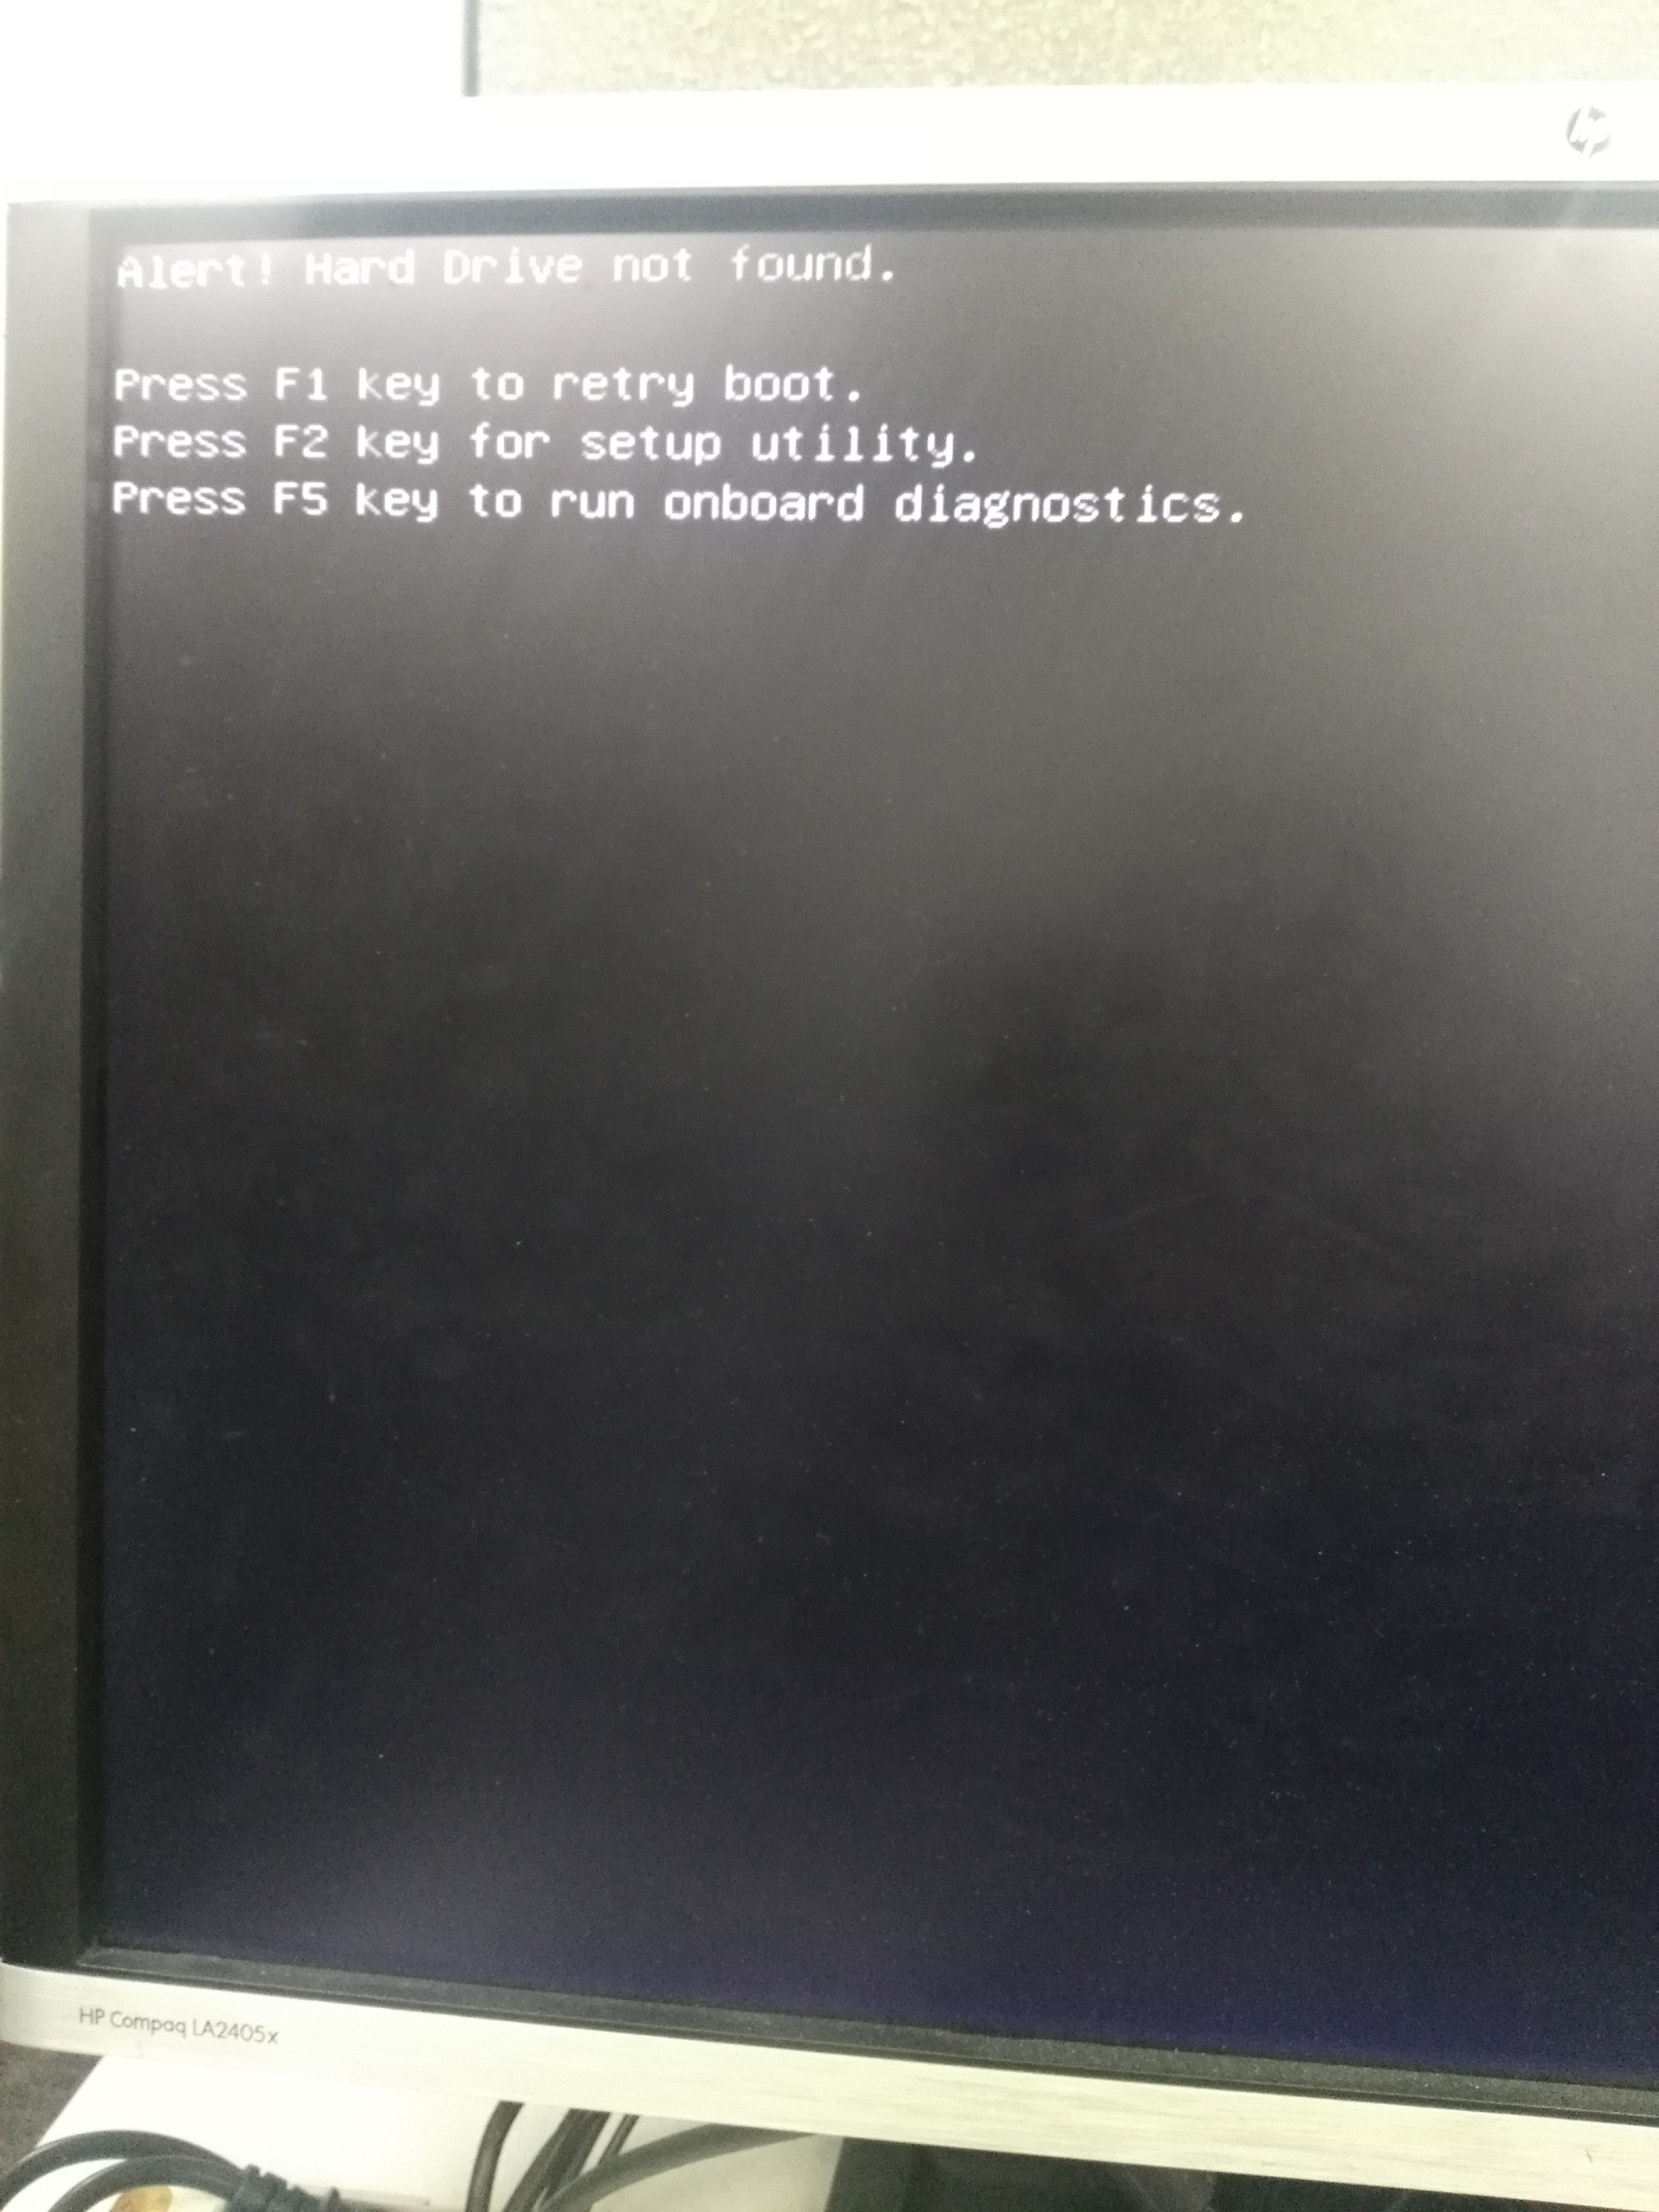 Can't boot into RedHat 6 9  Excruciating install and boot